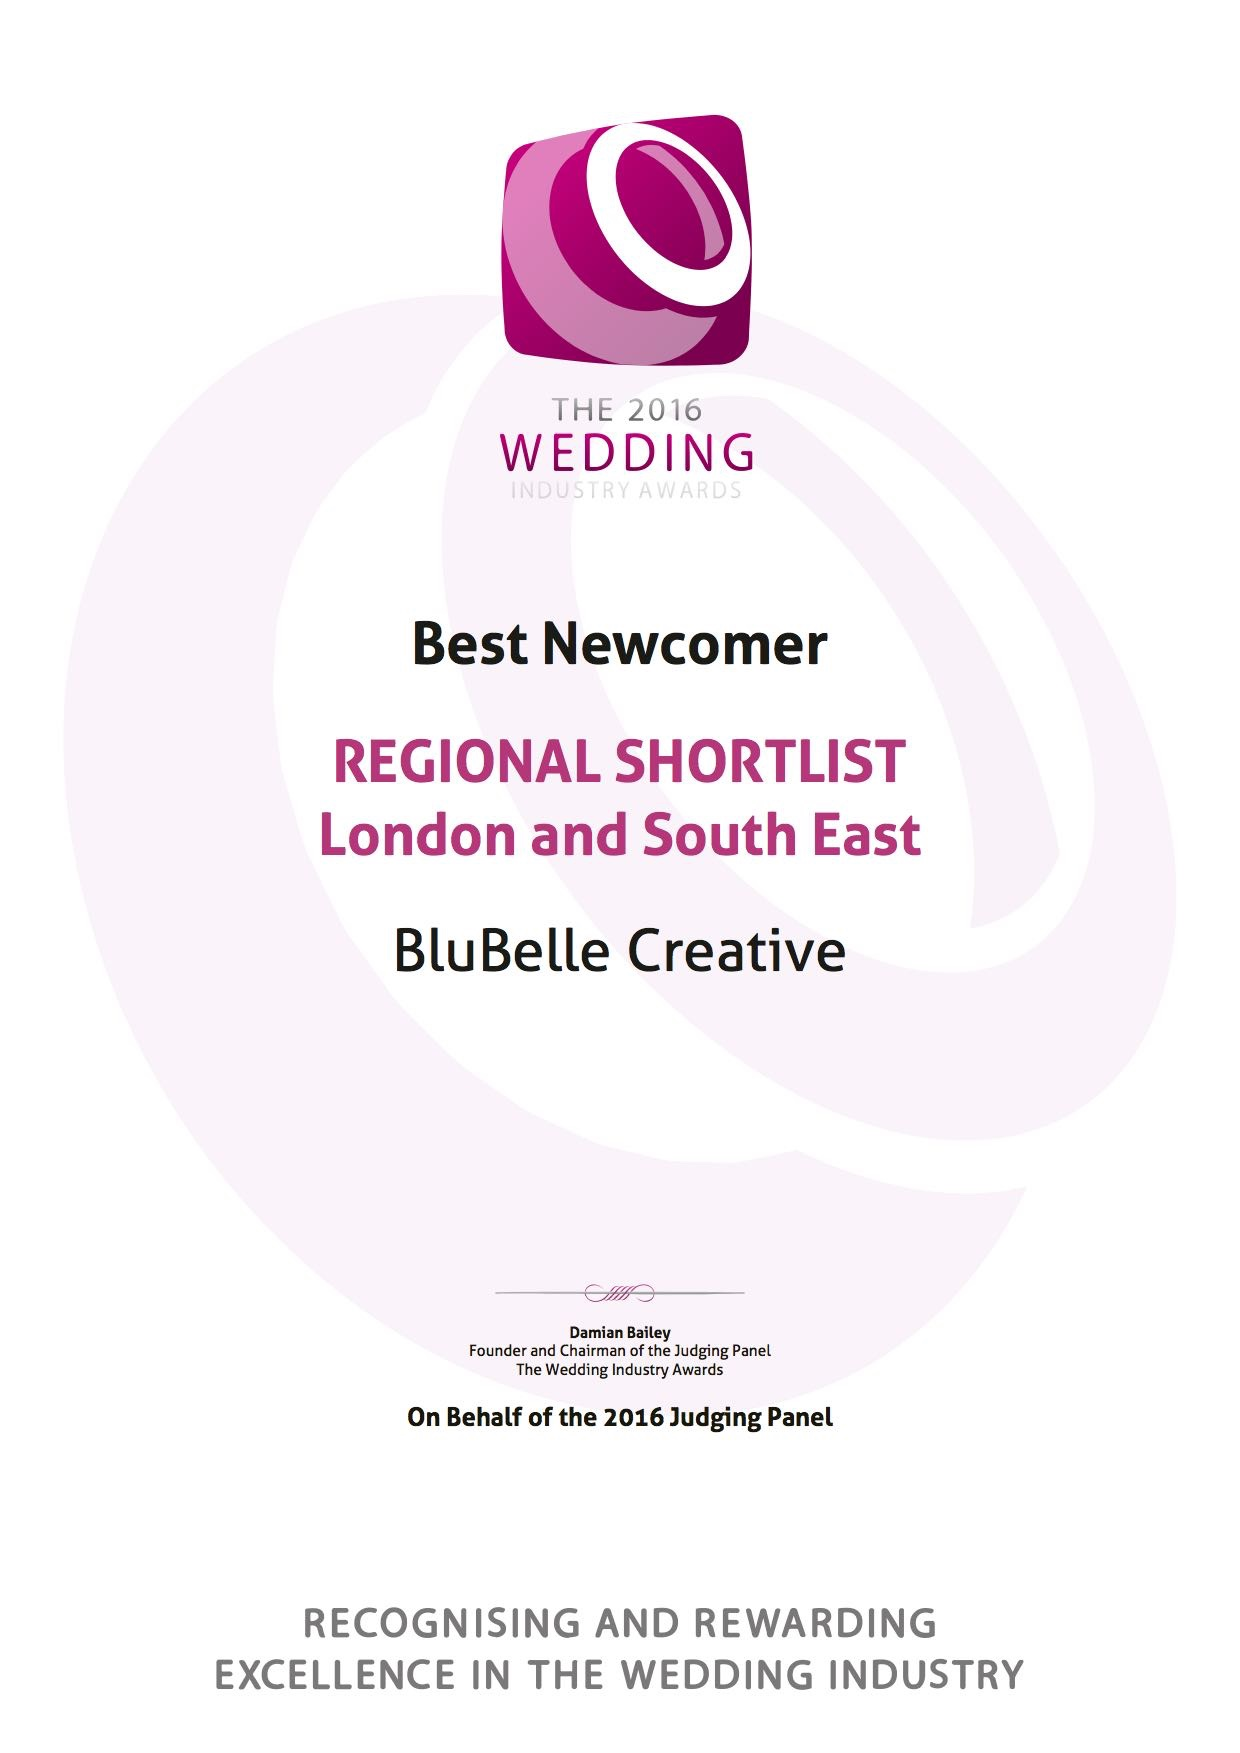 blubelle-creative-regional-shortlist-london-and-south-east-2